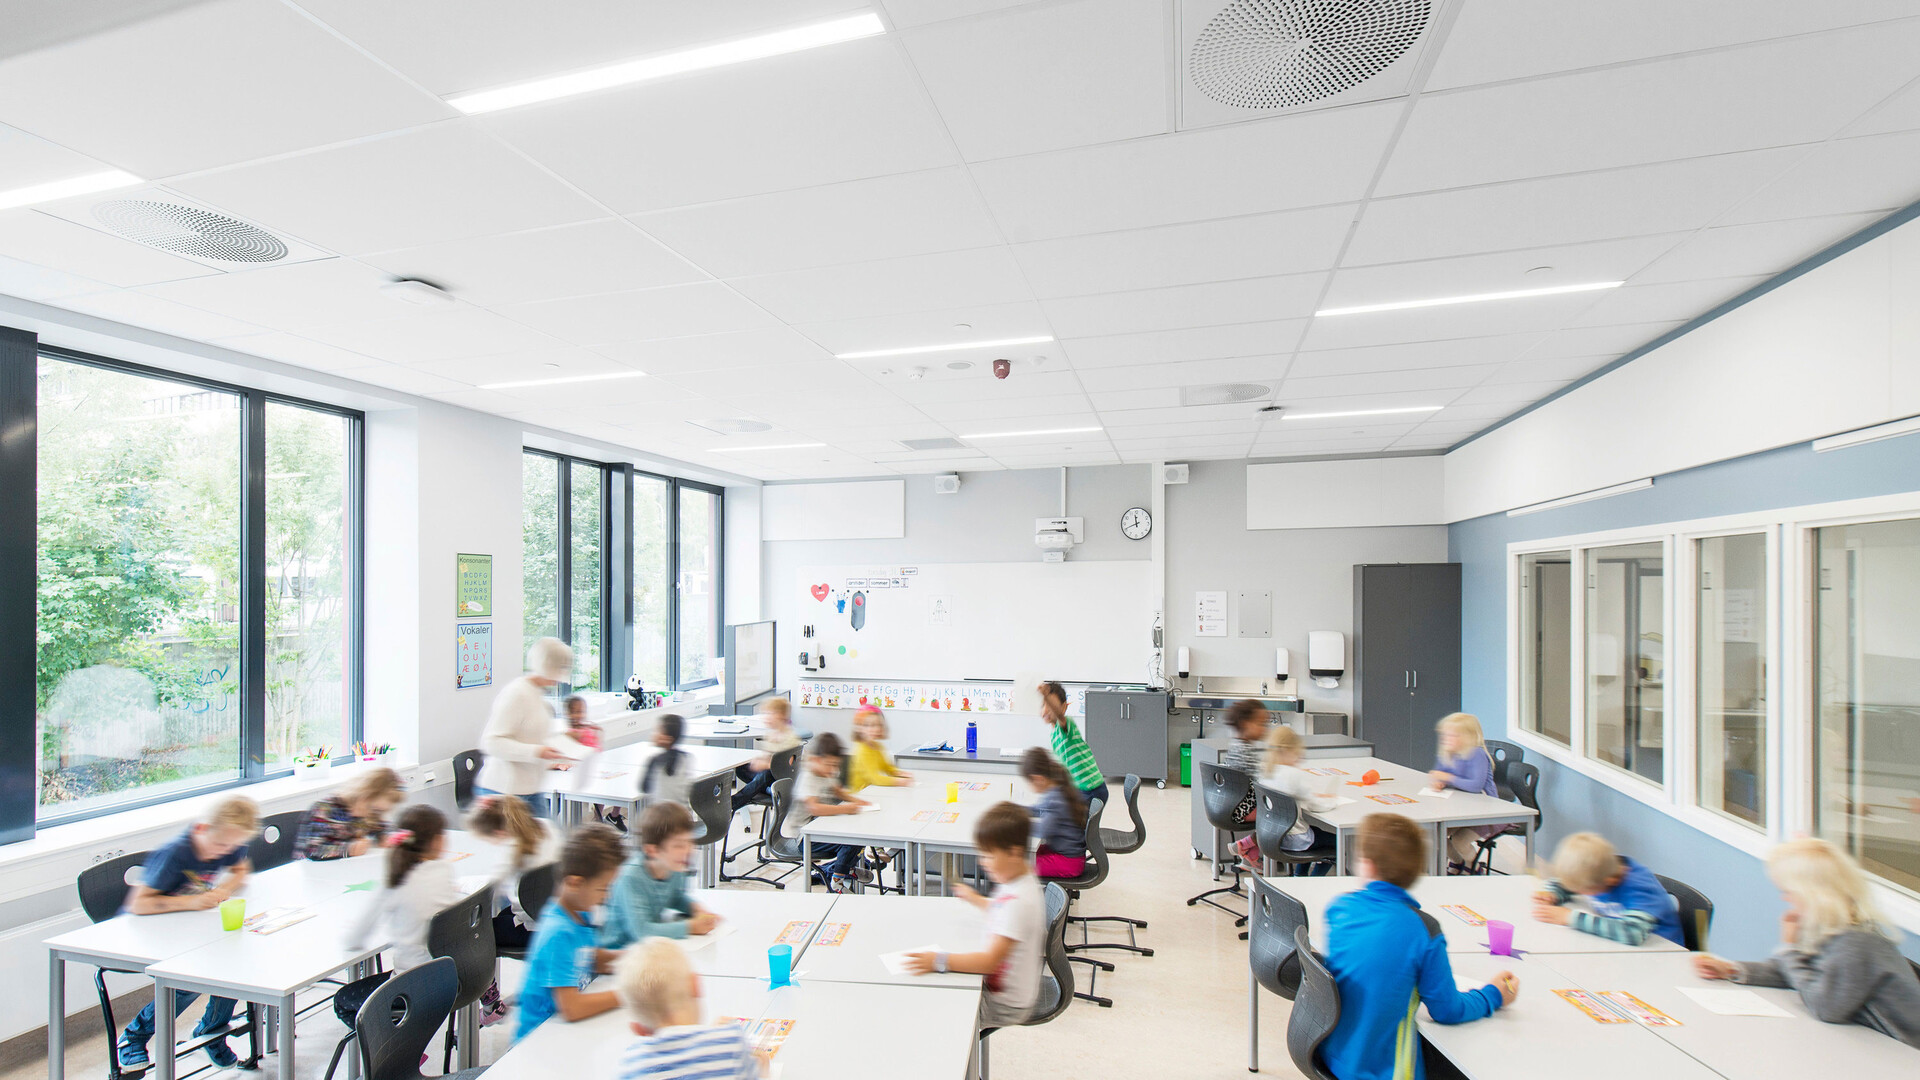 Acoustic suspended ceiling with Rockfon Blanka Activity ceiling tiles (for classrooms and open plan offices)